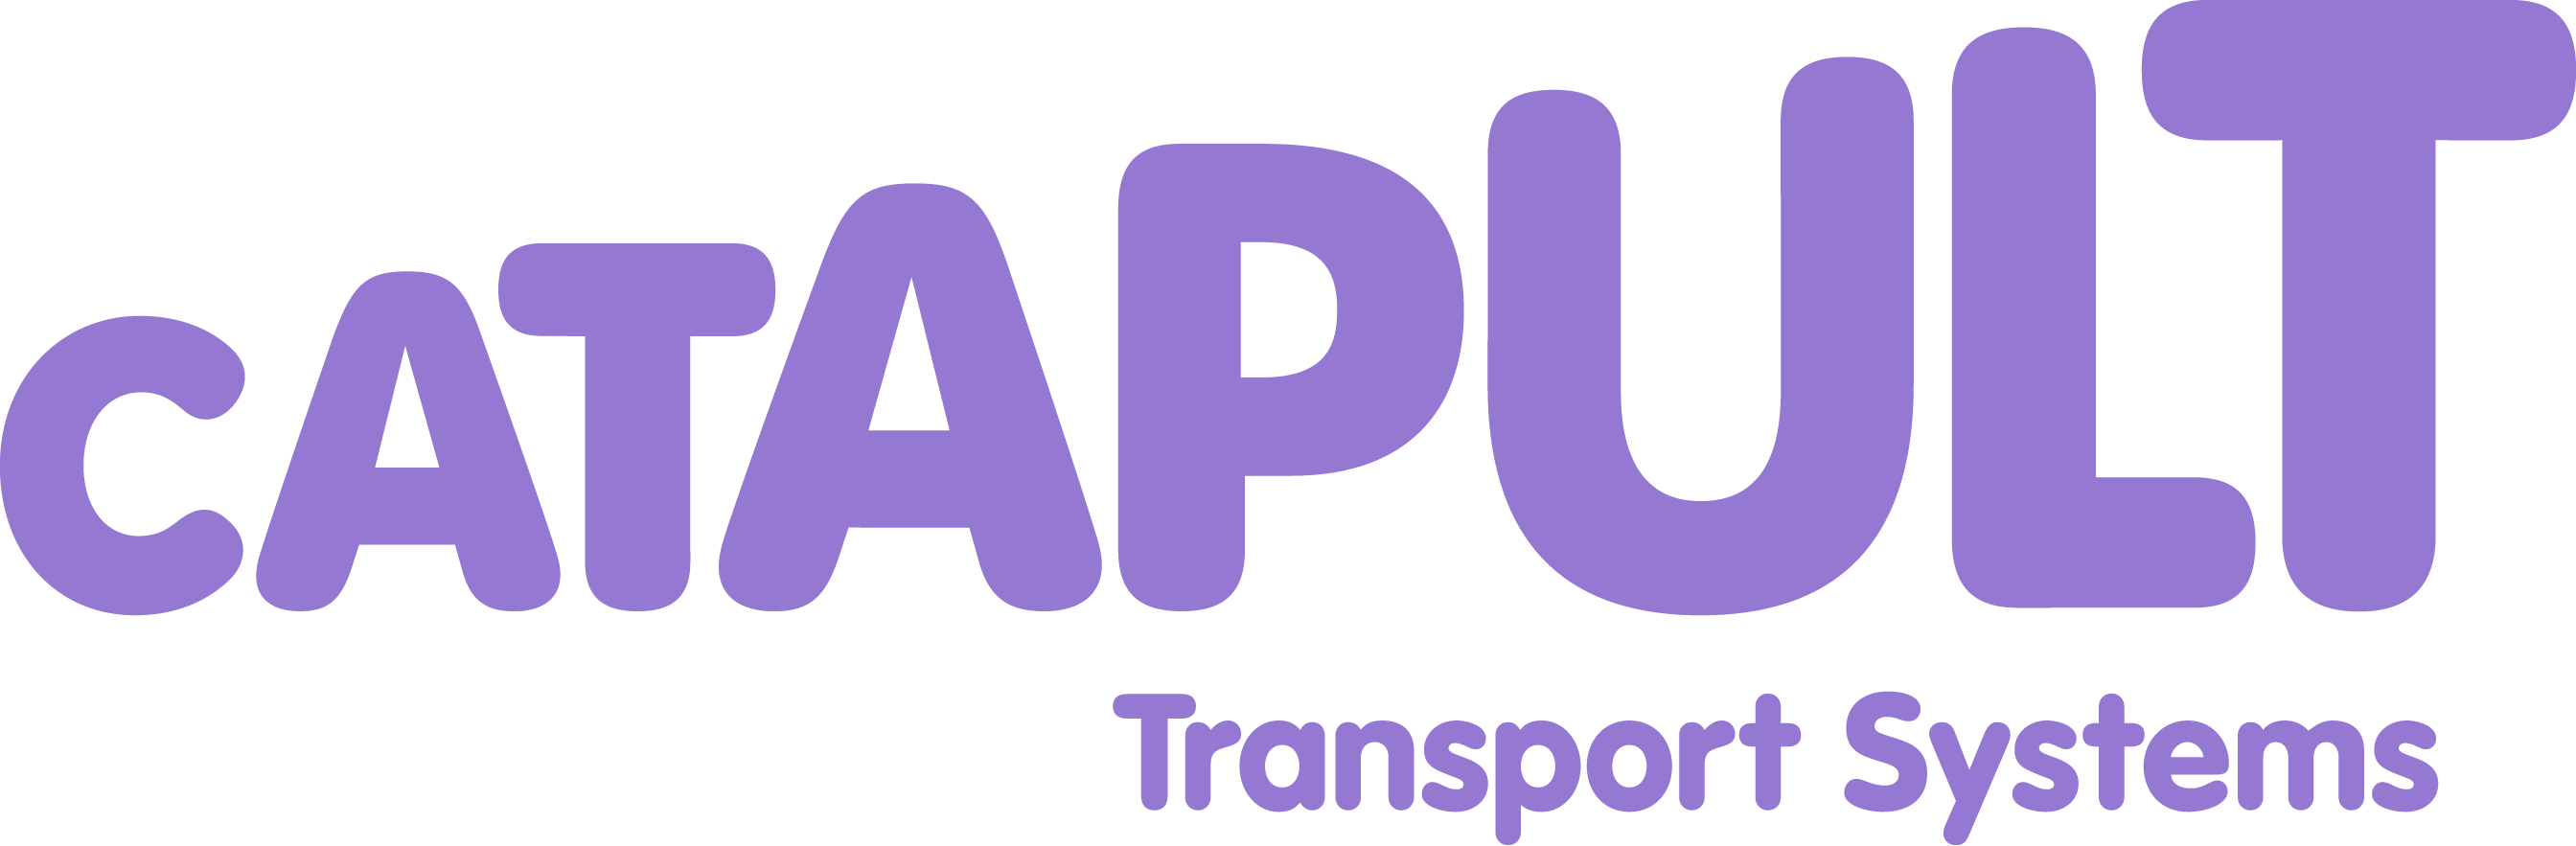 Transport Systems Catapult Ltd Milton Keynes Chamber Of Commerce